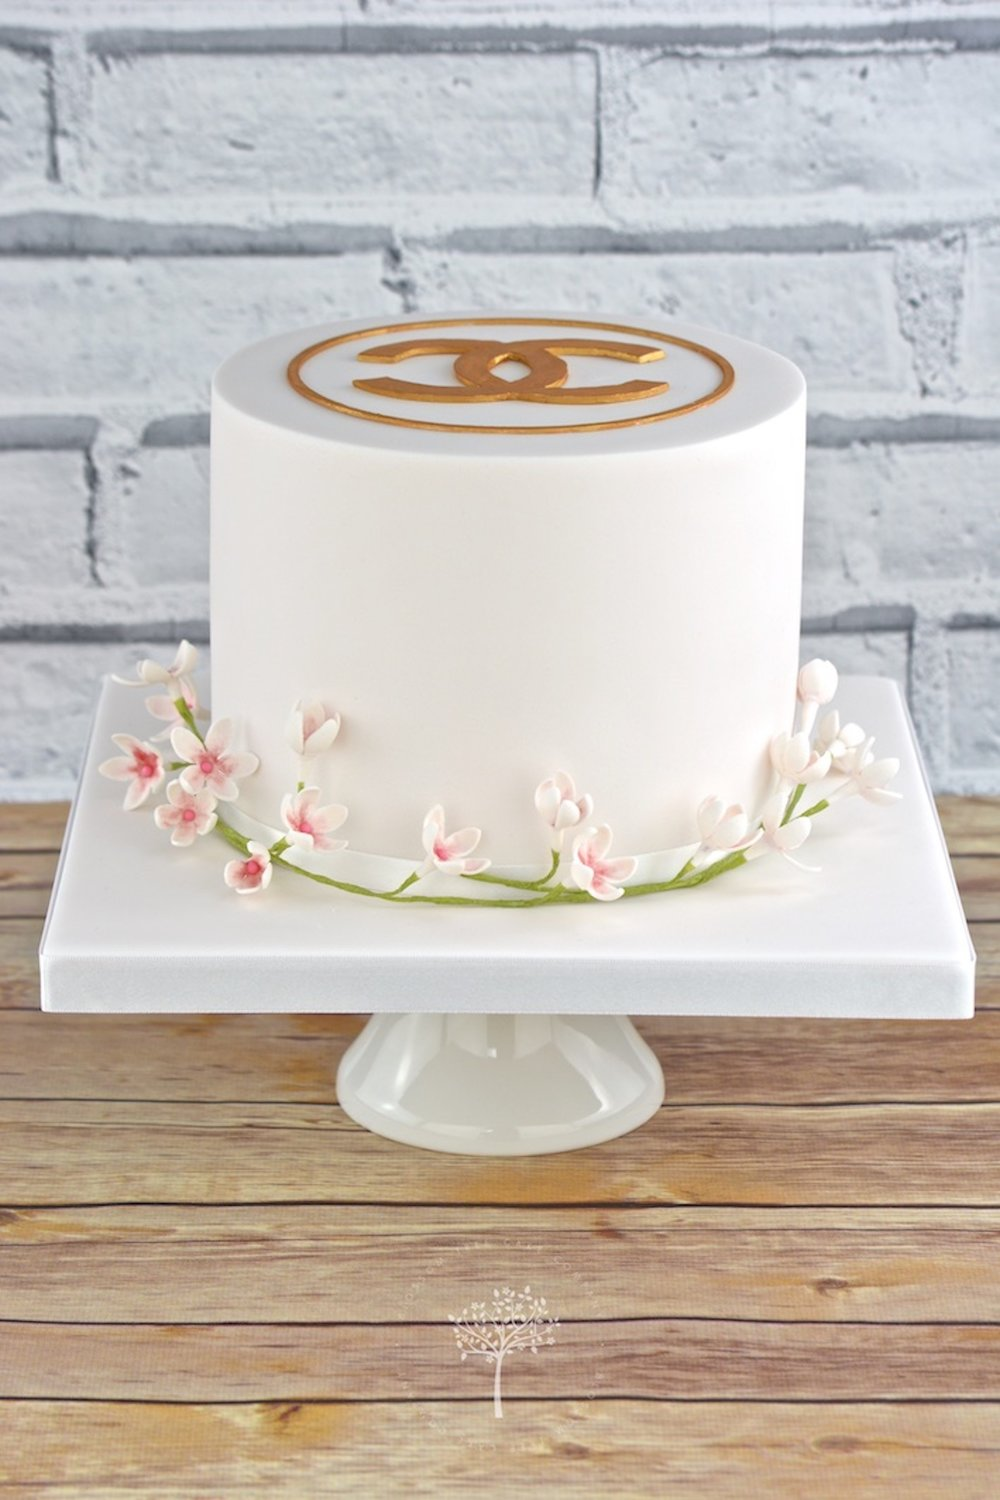 Blush pink Chanel celebration cake by Blossom Tree Cake Company Harrogate North Yorkshire.jpg